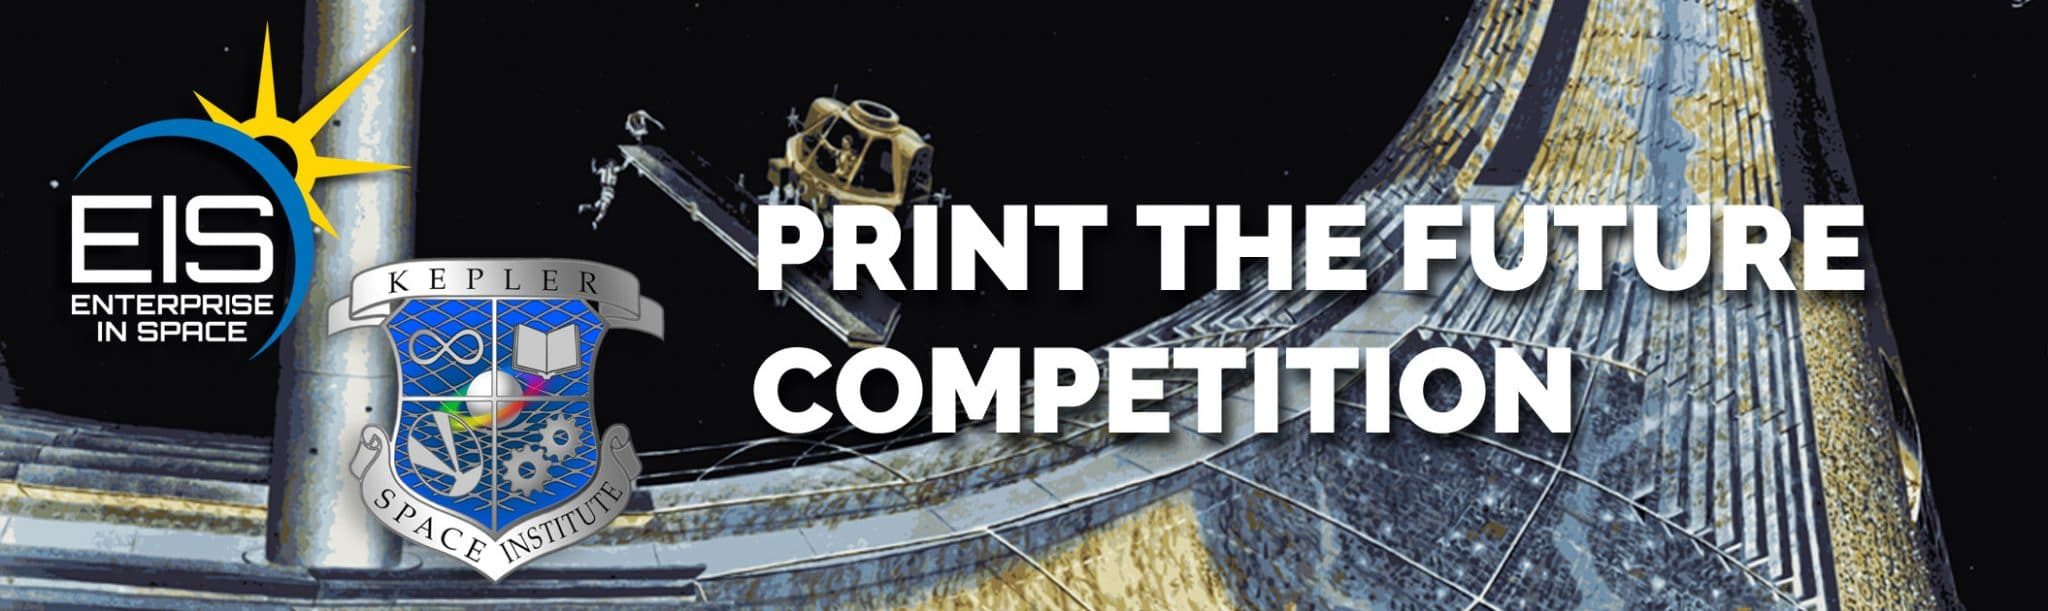 print-the-future-competition-banner